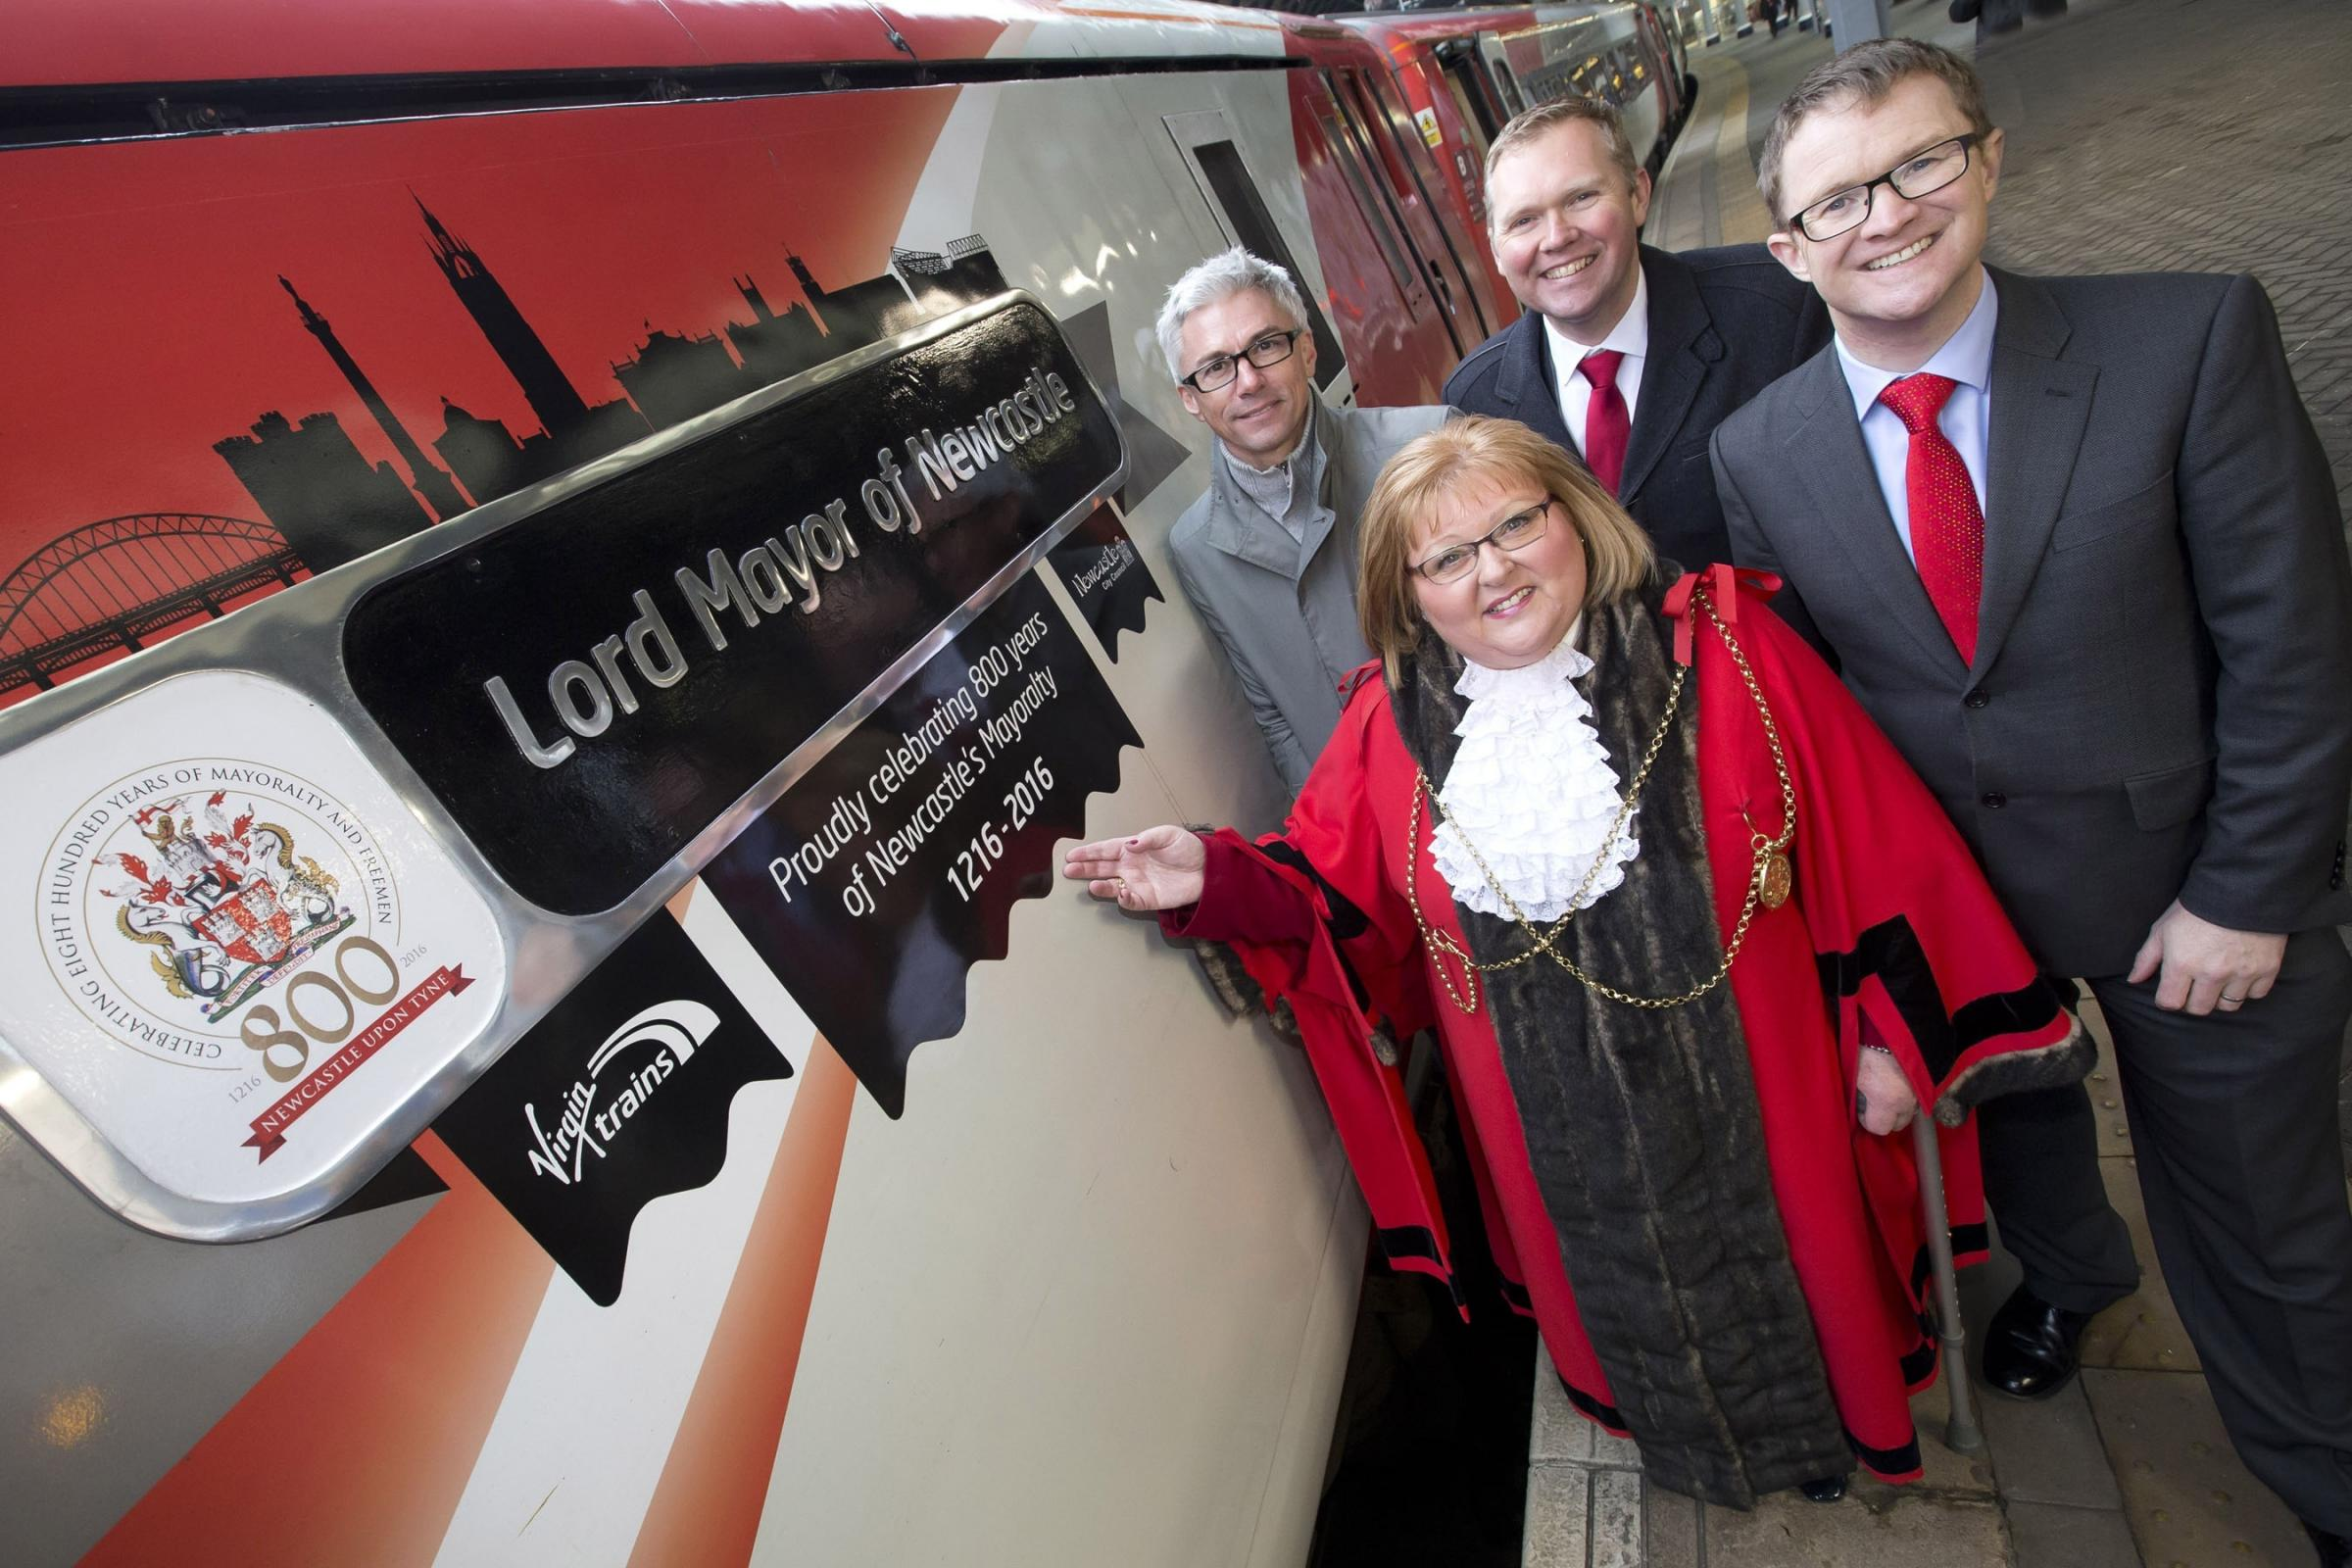 CEREMONY: Jonathan Edwards, Cllr Hazel Stephenson (the Lord Mayor of Newcastle), Cllr Nick Forbes (Leader of Newcastle City Council), David Horne, Managing Director of Virgin Trains on its east coast route.